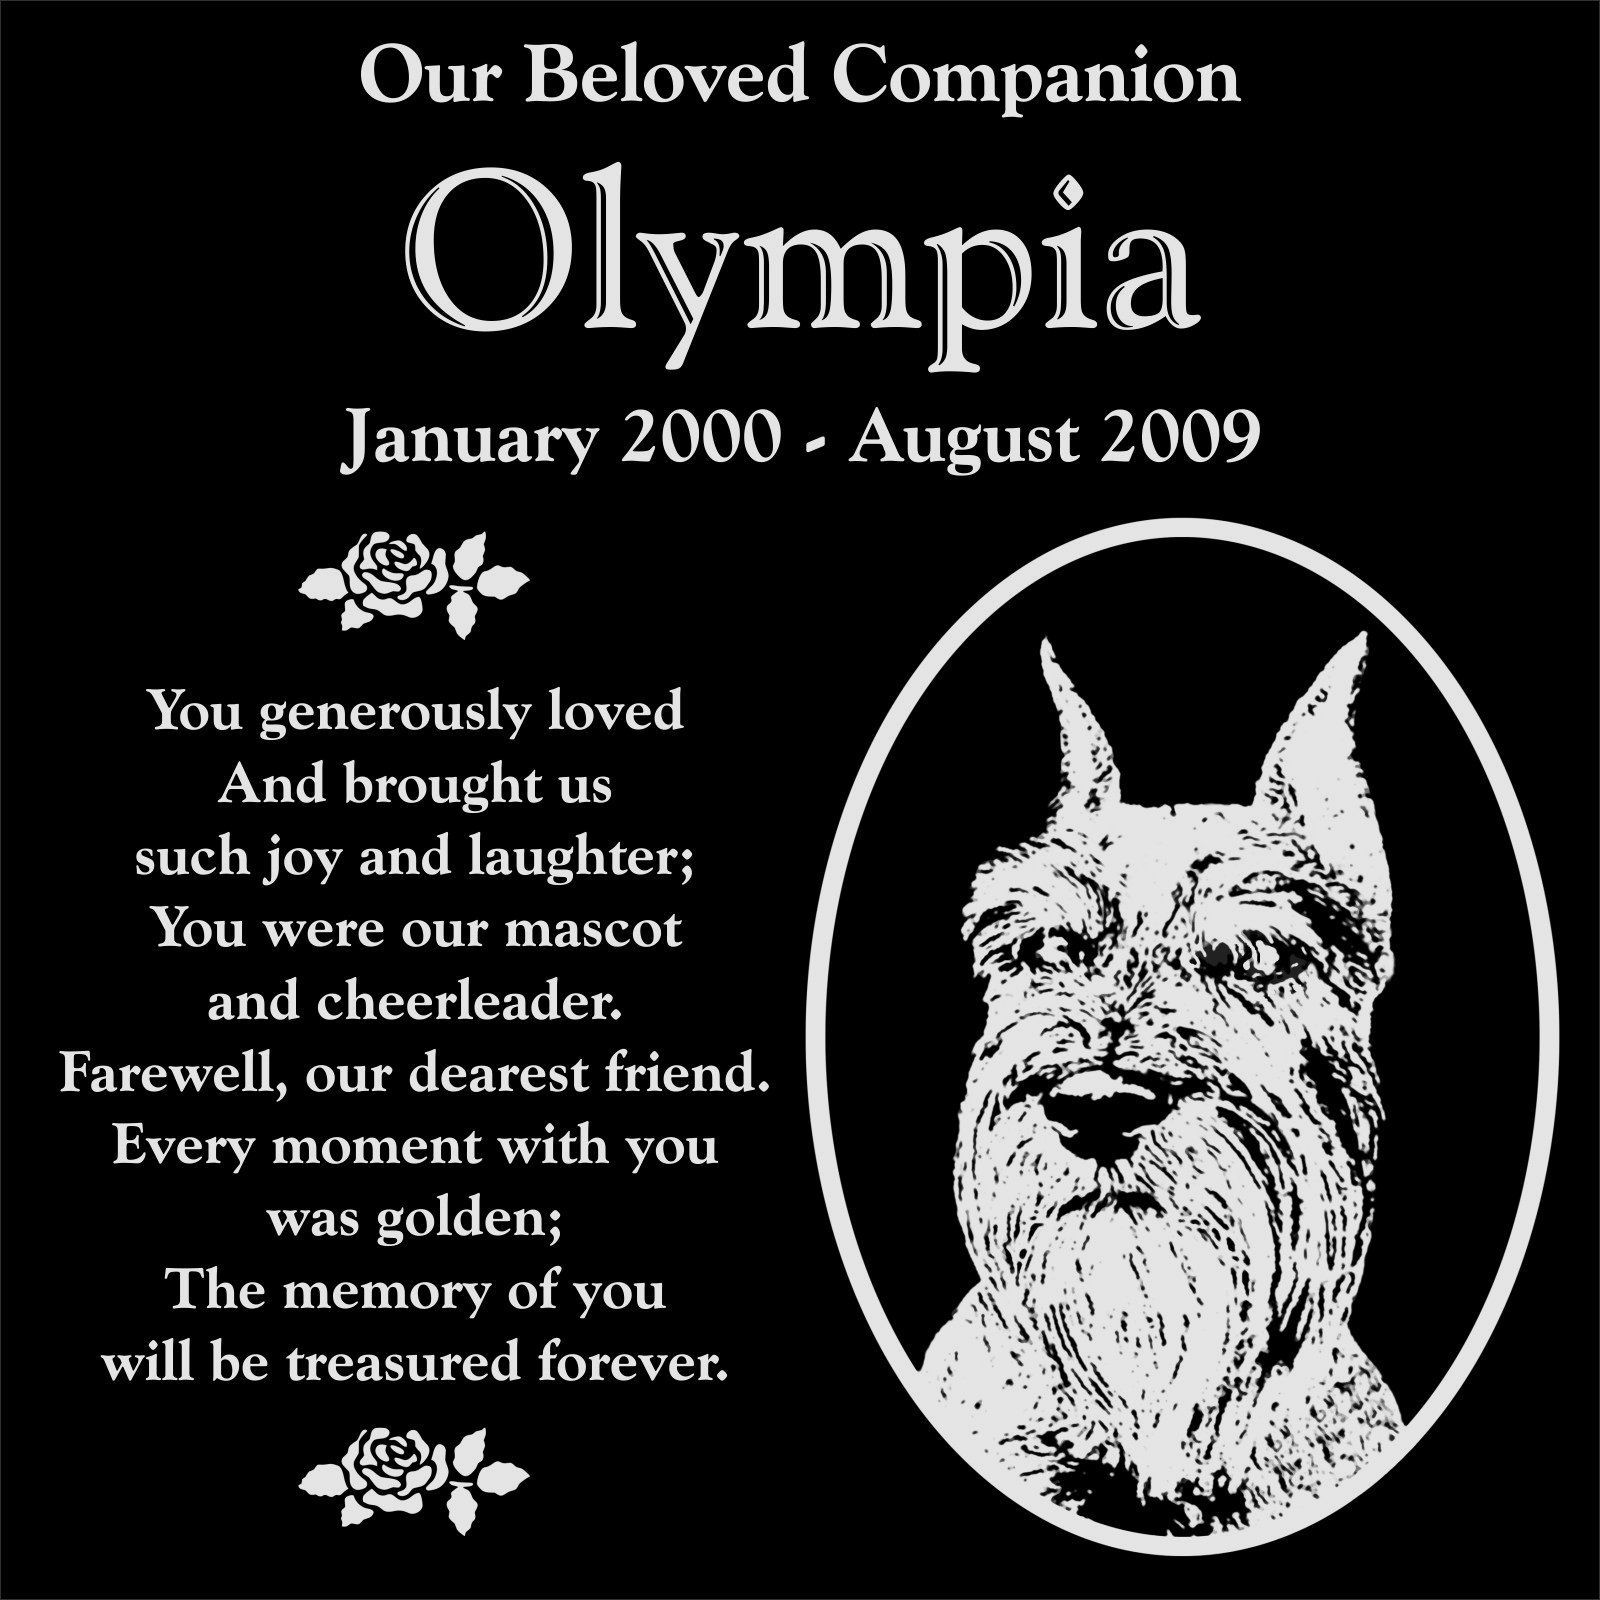 Lazzari Collections Personalized Schnauzer Dog Pet Memorial 12''x12'' Engraved Black Granite Grave Marker Head Stone Plaque OLY1 by Lazzari Collections